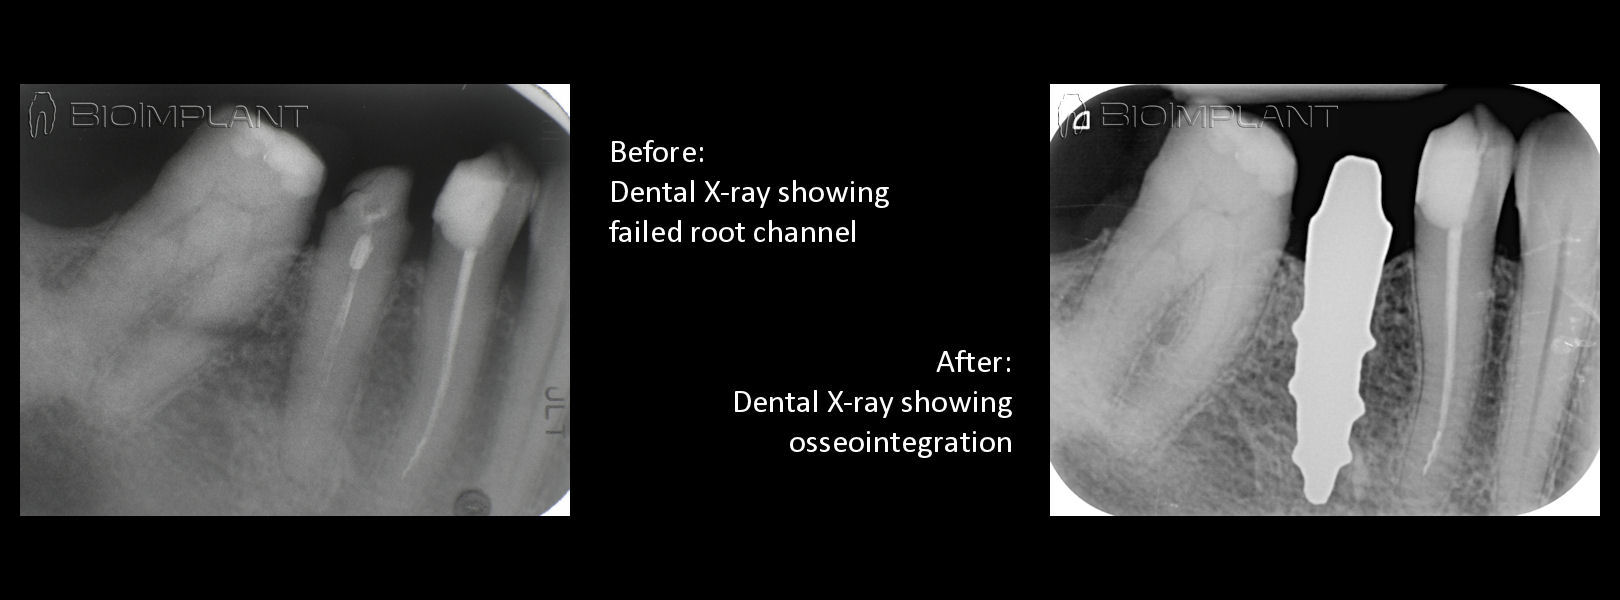 anatomic_implant_osseointegration_xray